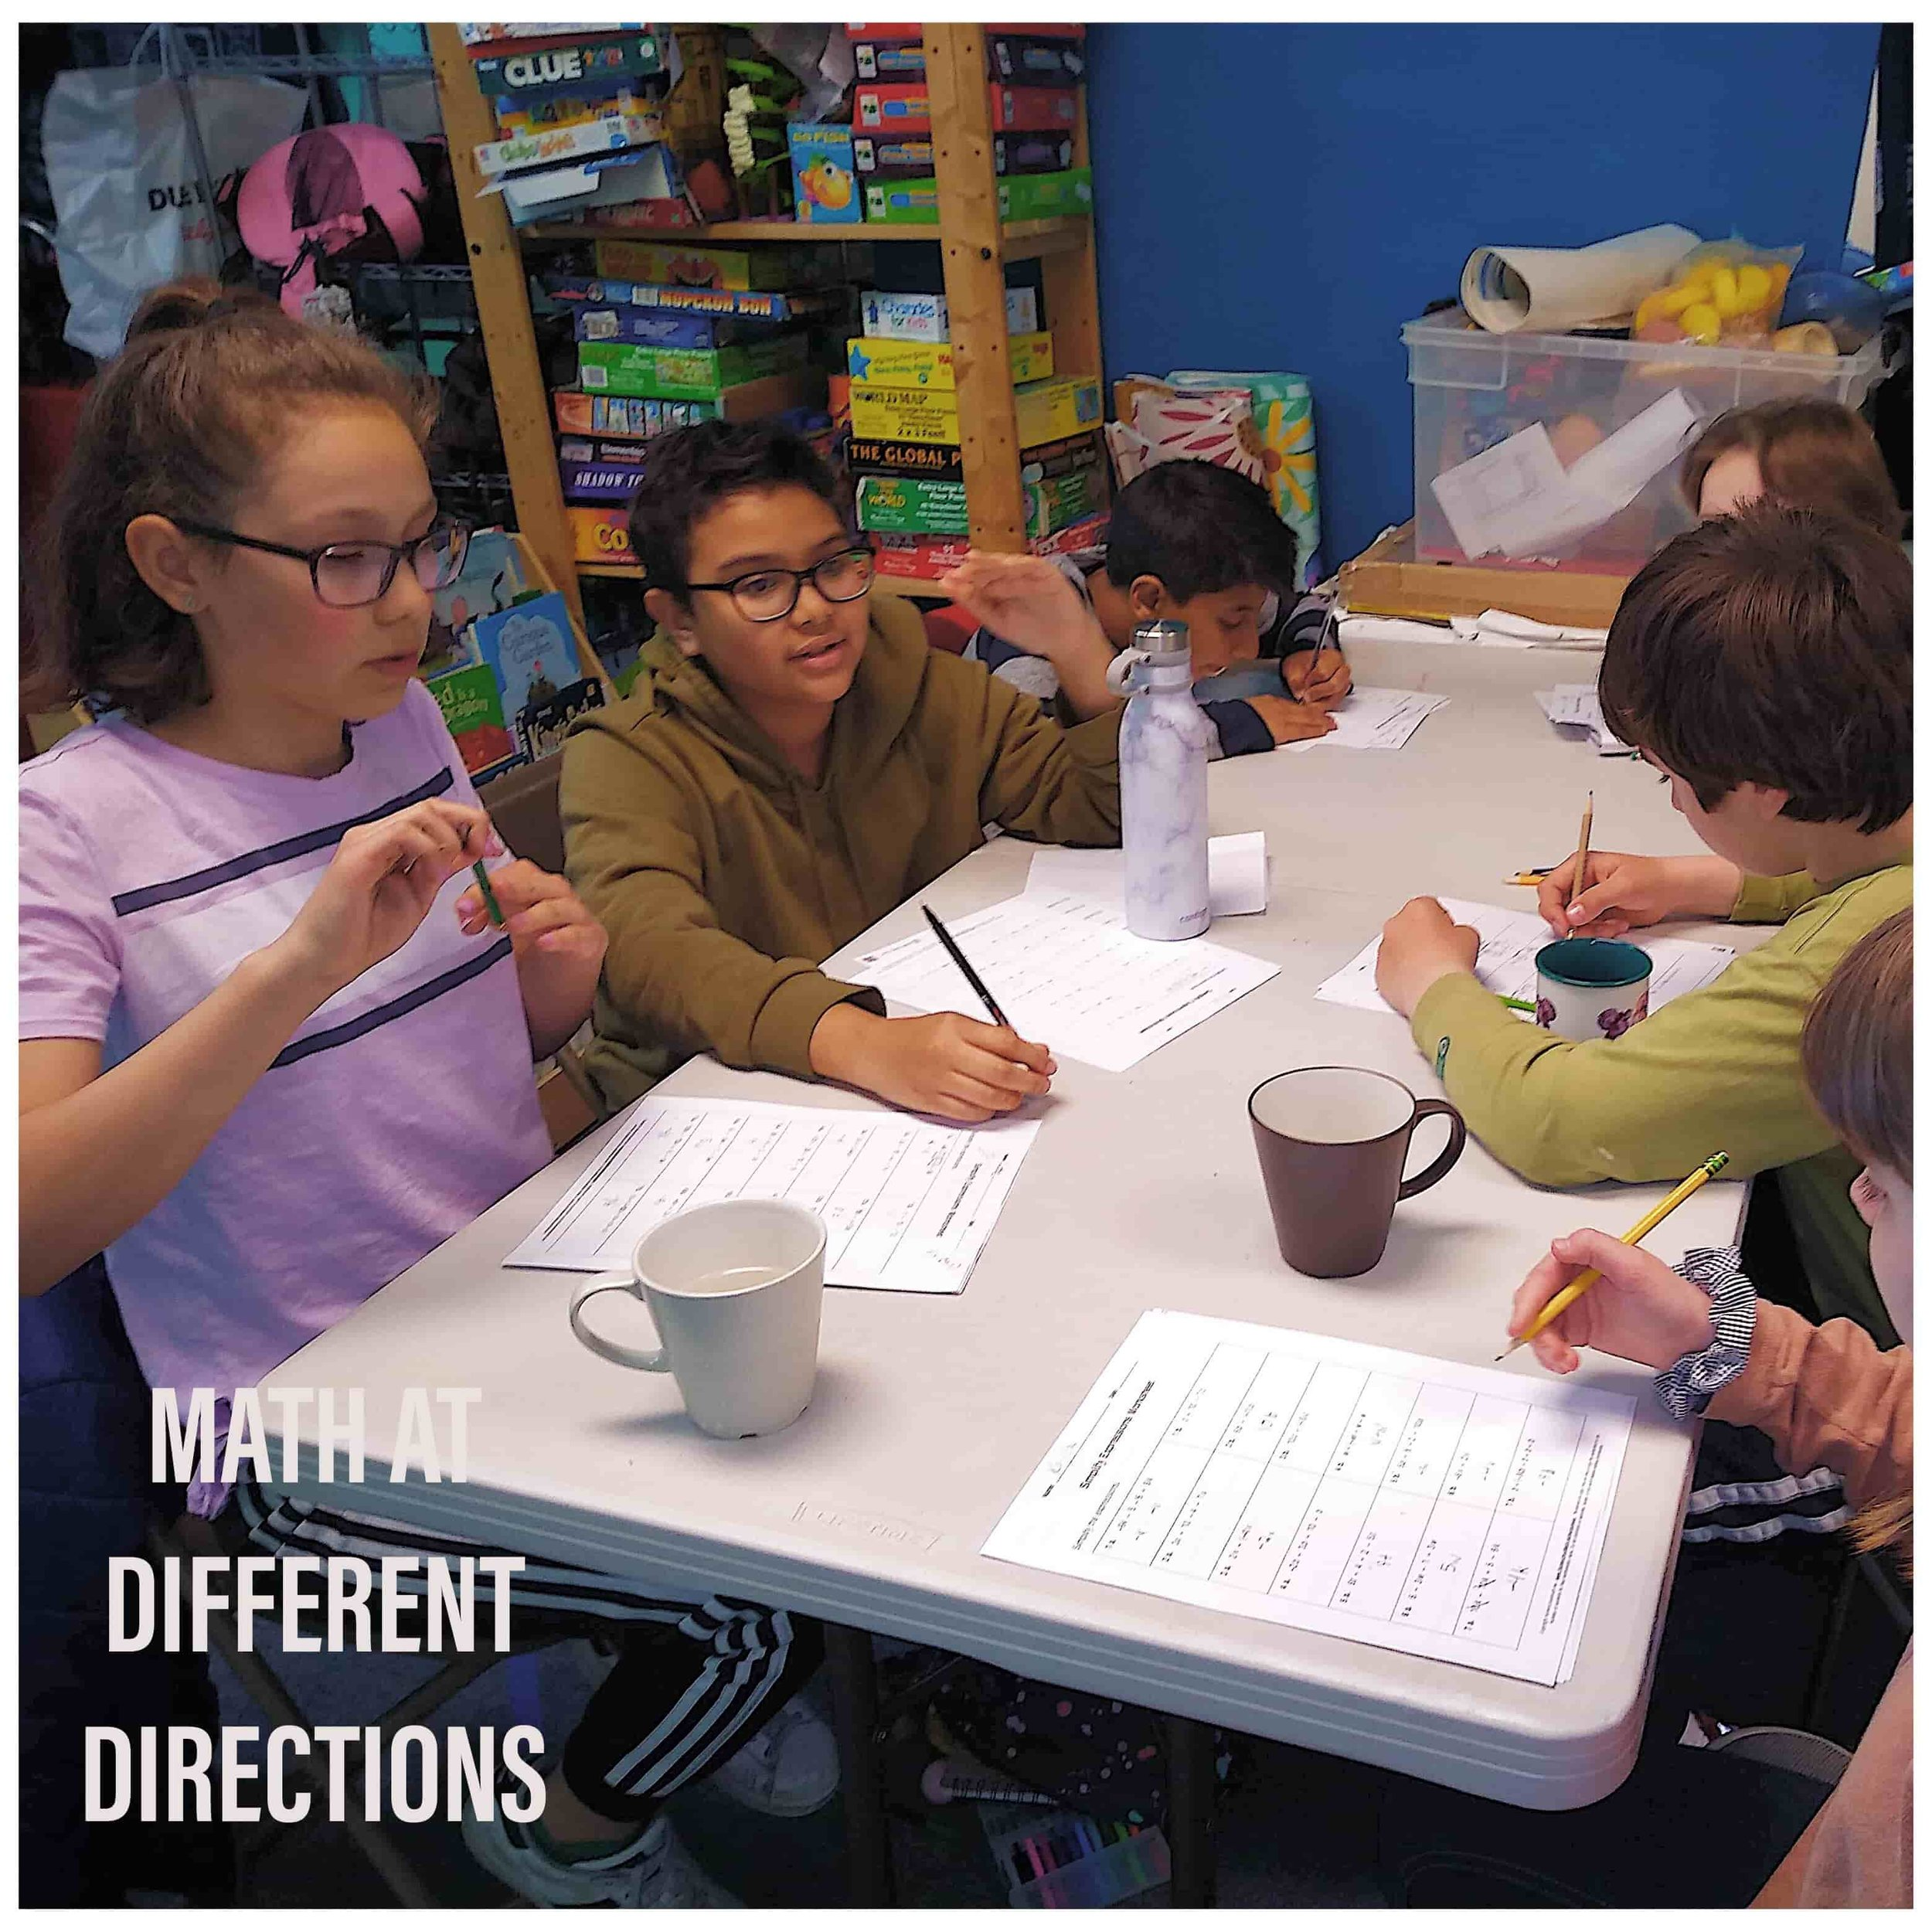 Homeschooling Math Classes at Different Directions NYC 02-1.jpeg